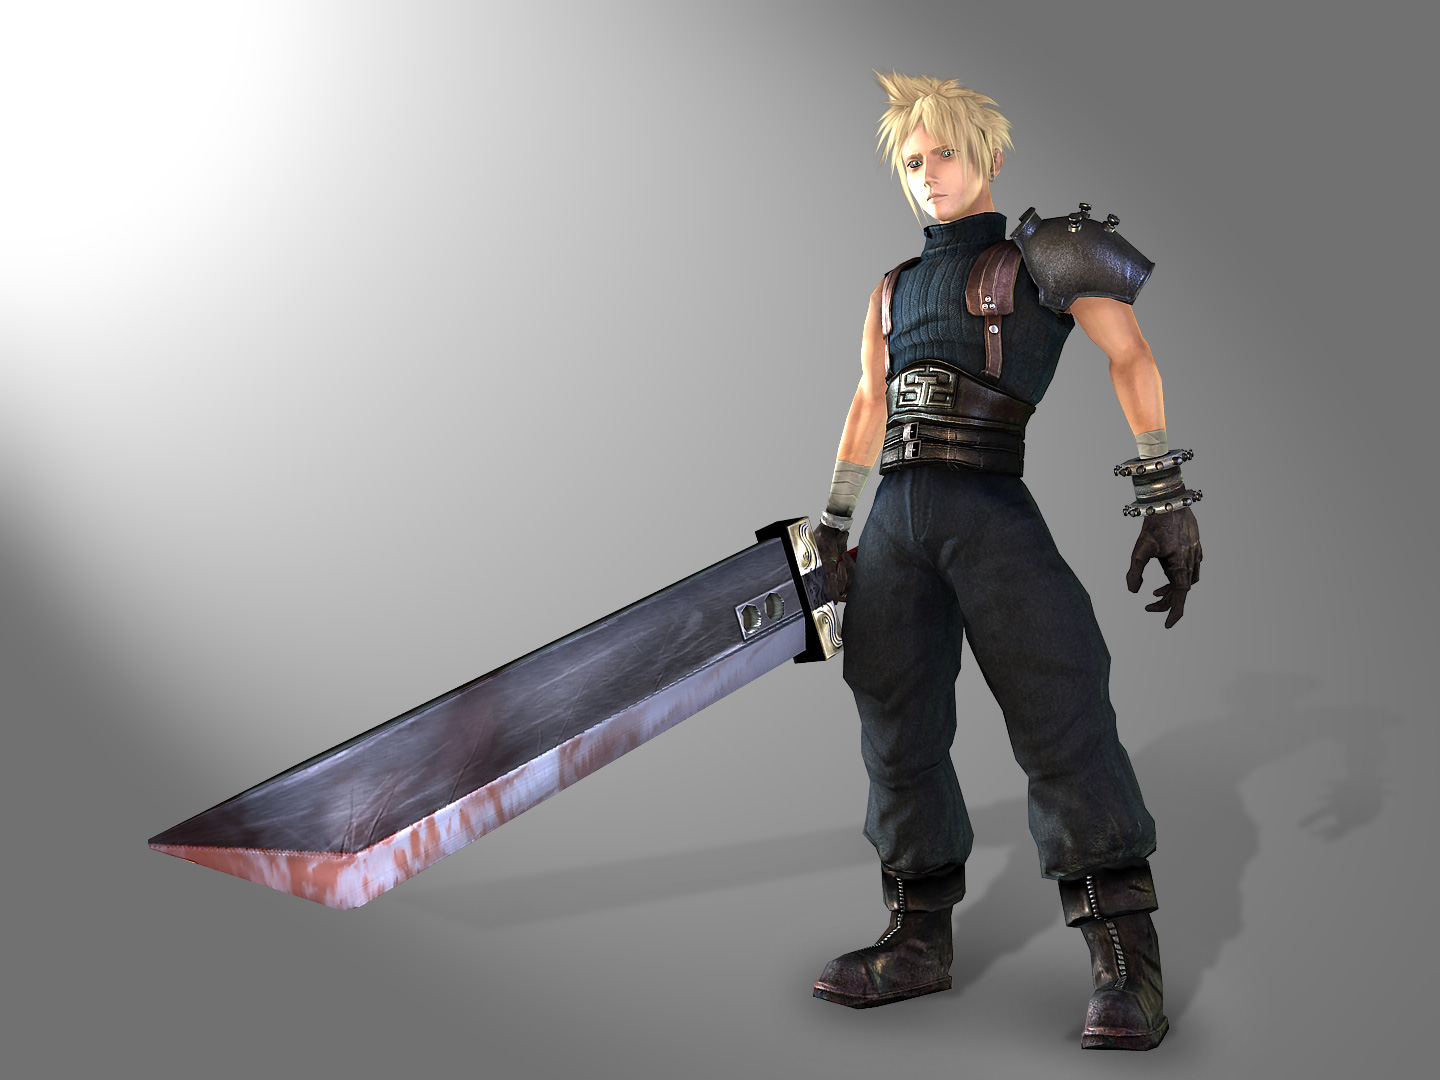 Cloud FF7 REMAKE by genci